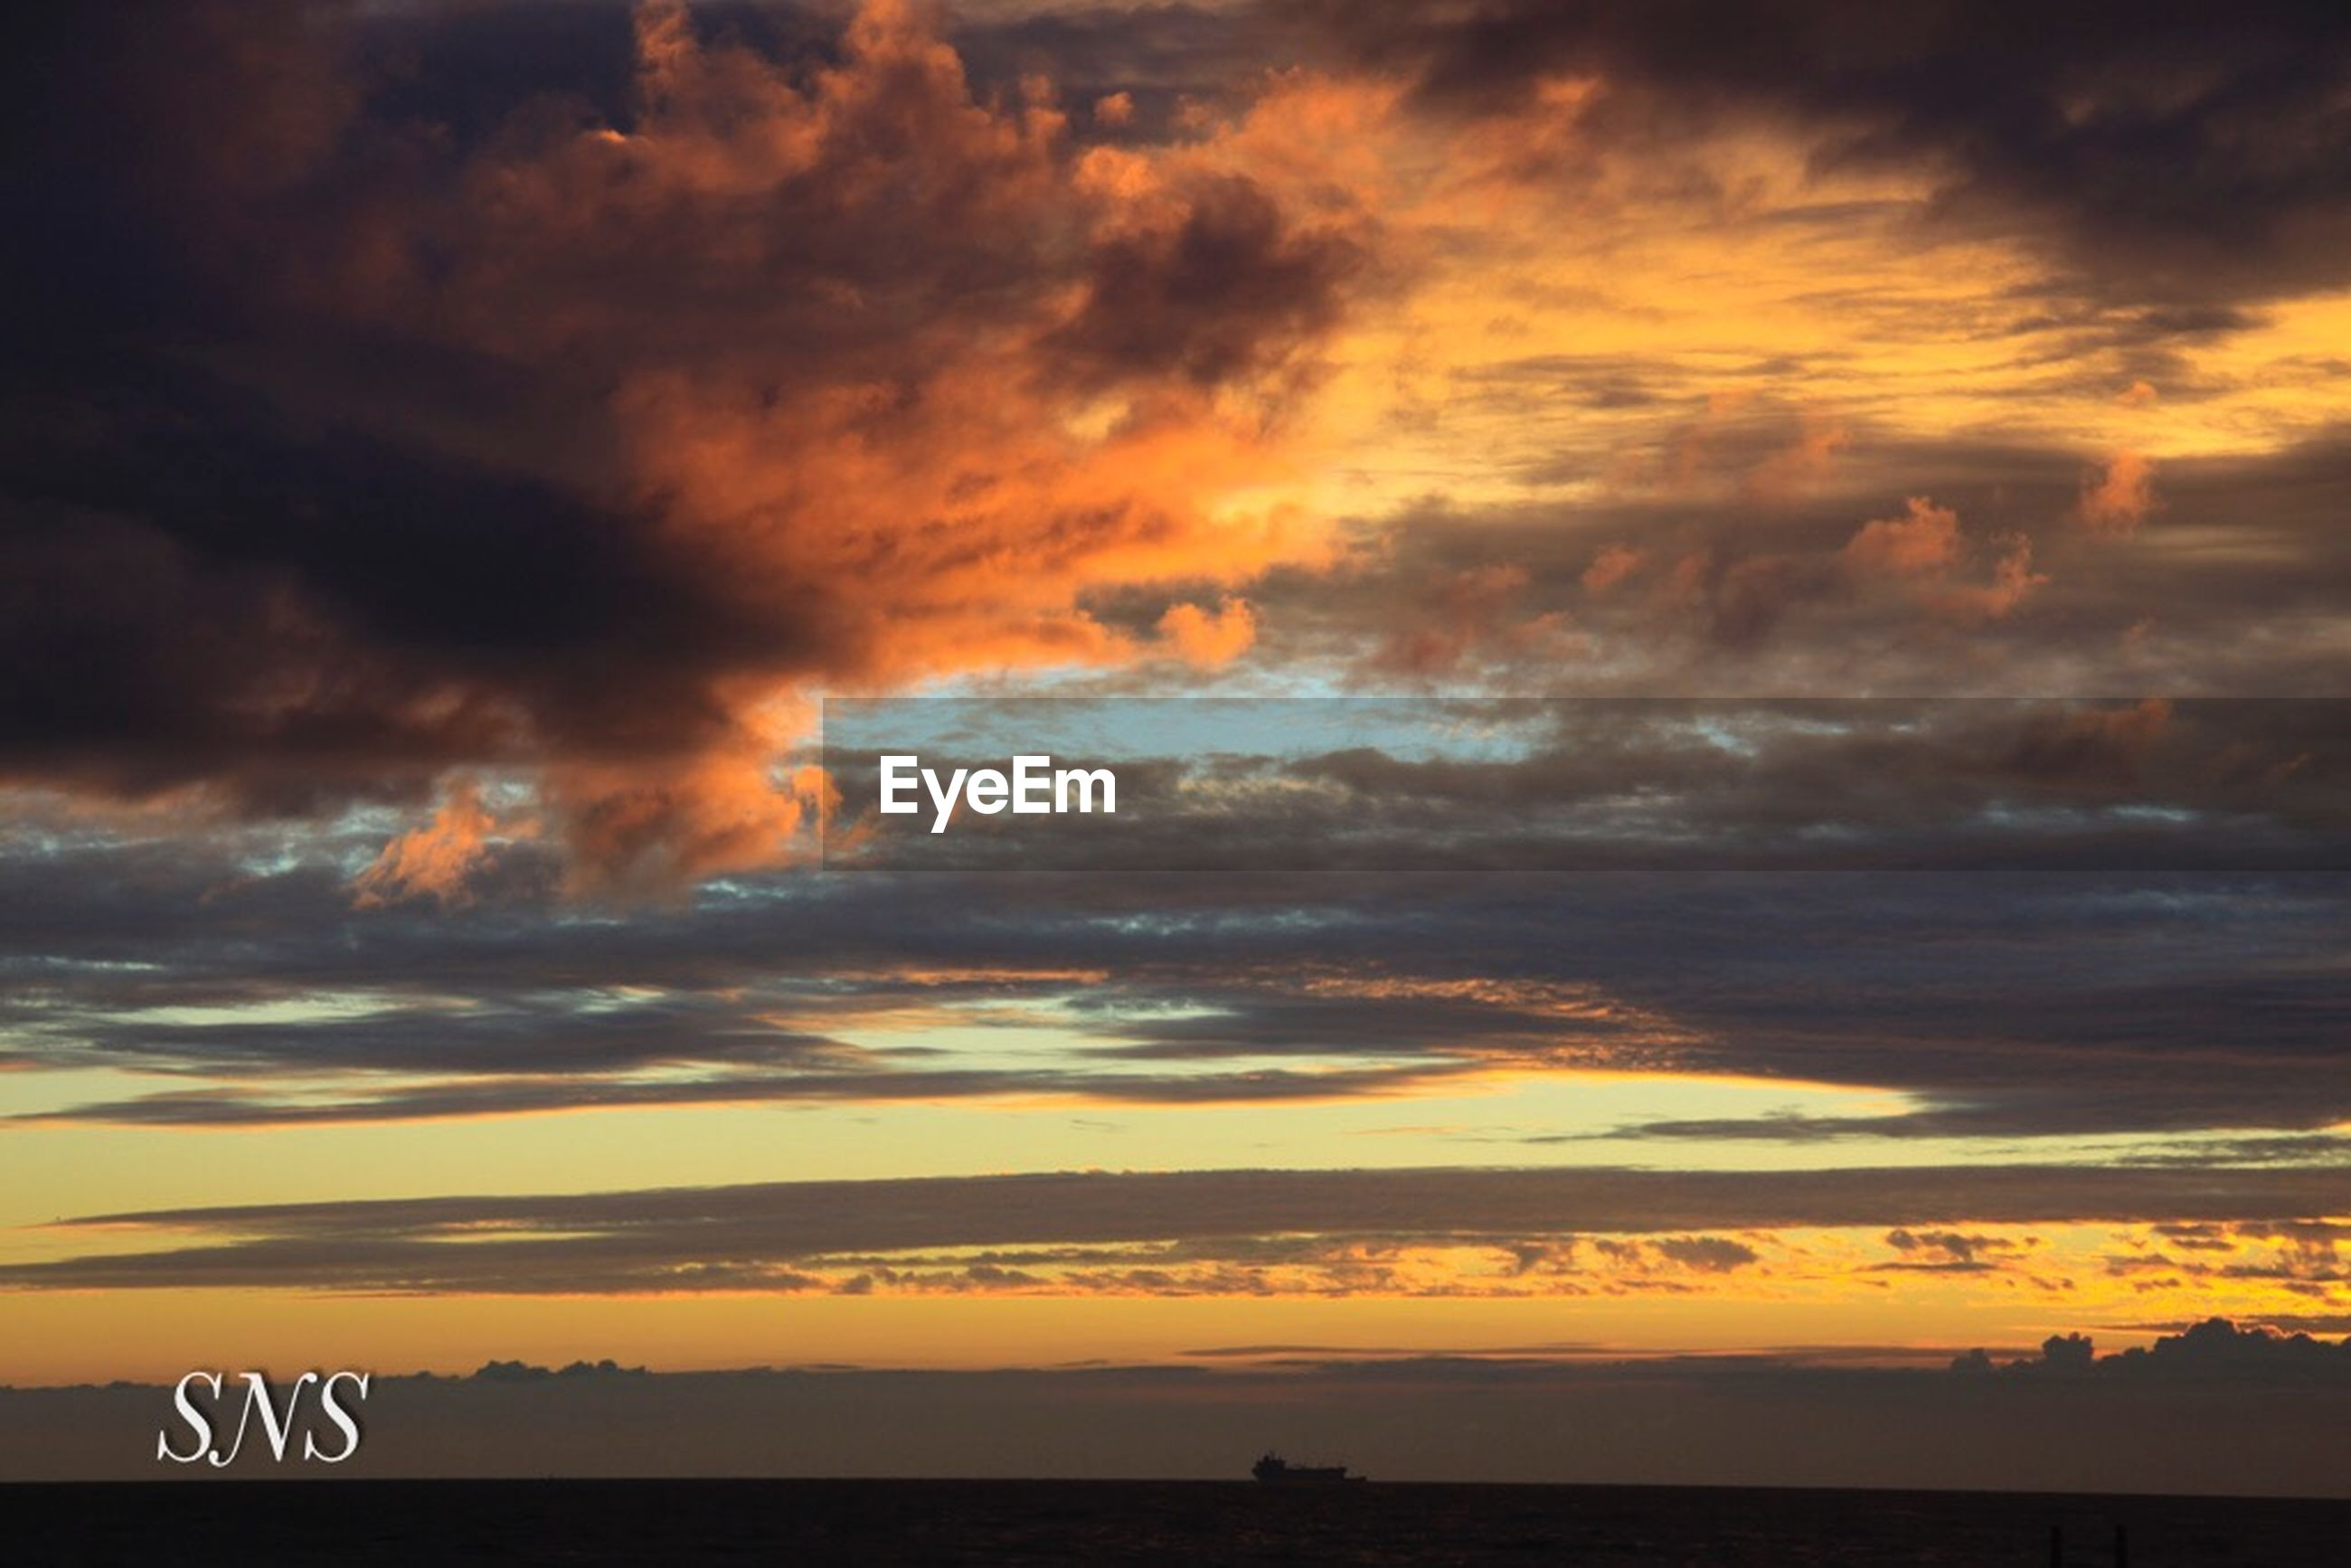 cloud - sky, sky, sunset, beauty in nature, scenics - nature, orange color, tranquil scene, tranquility, nature, no people, silhouette, idyllic, dramatic sky, text, outdoors, sign, communication, number, western script, horizon